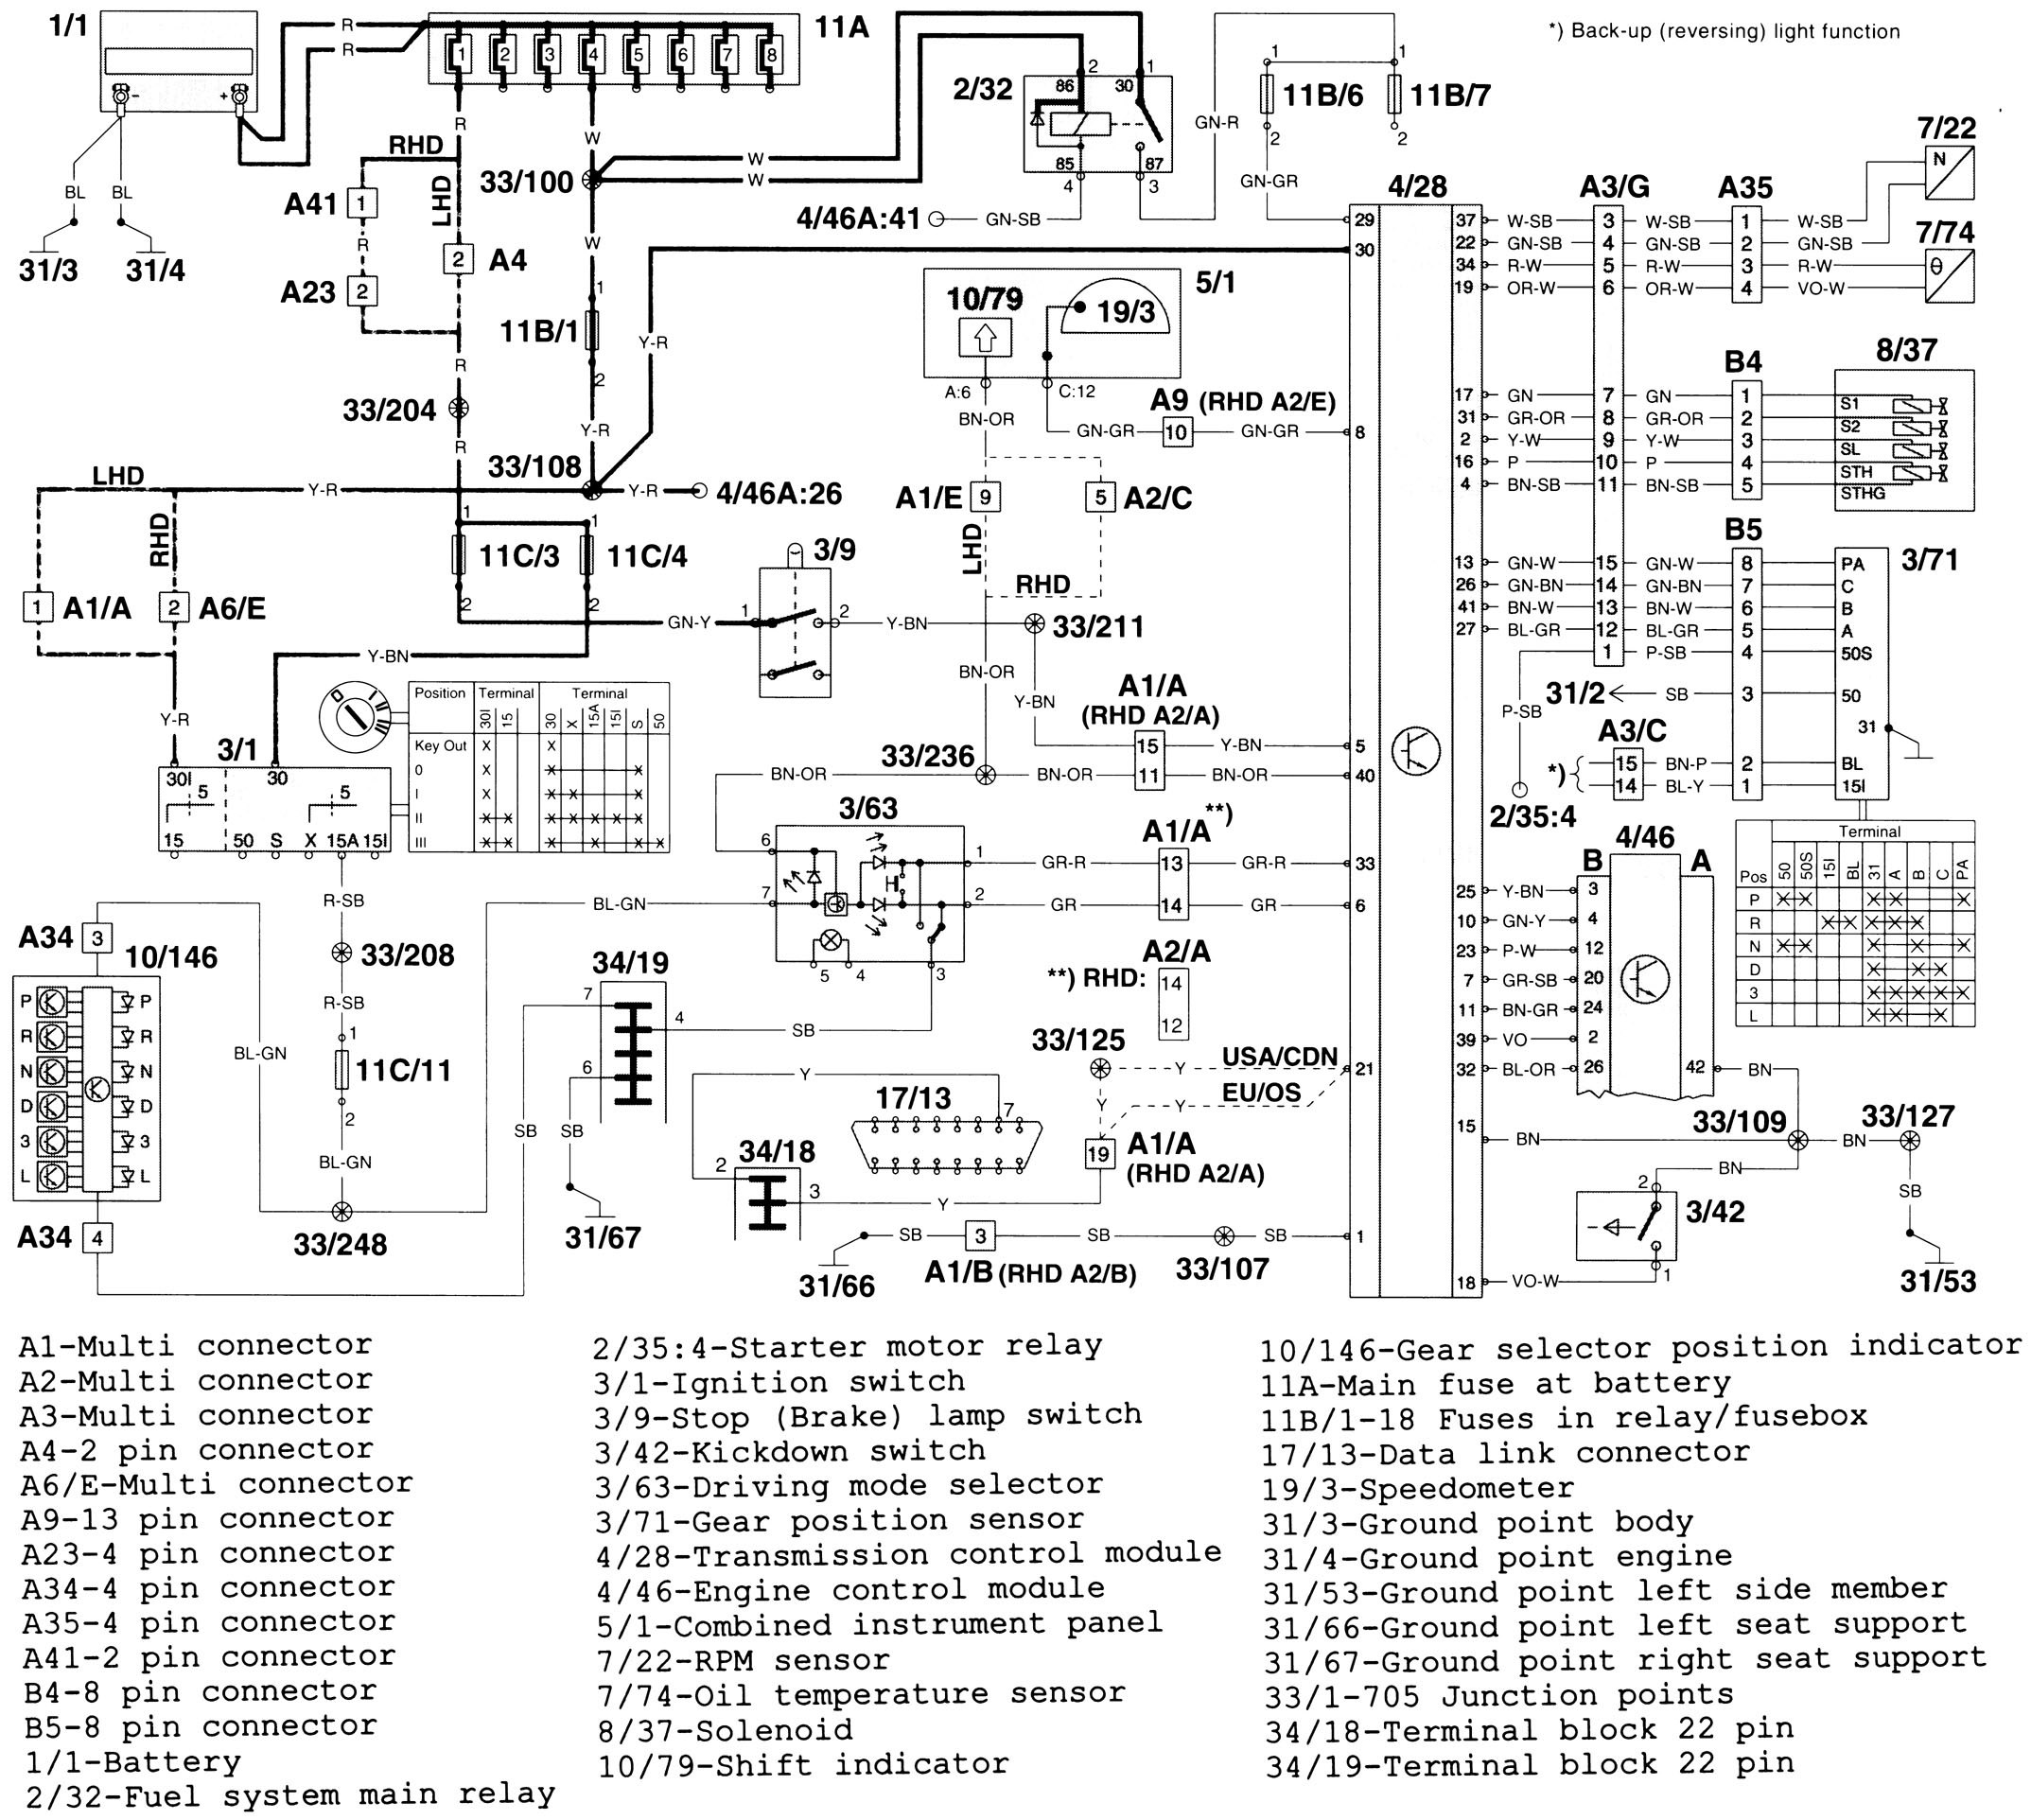 Wiring Diagram For V70